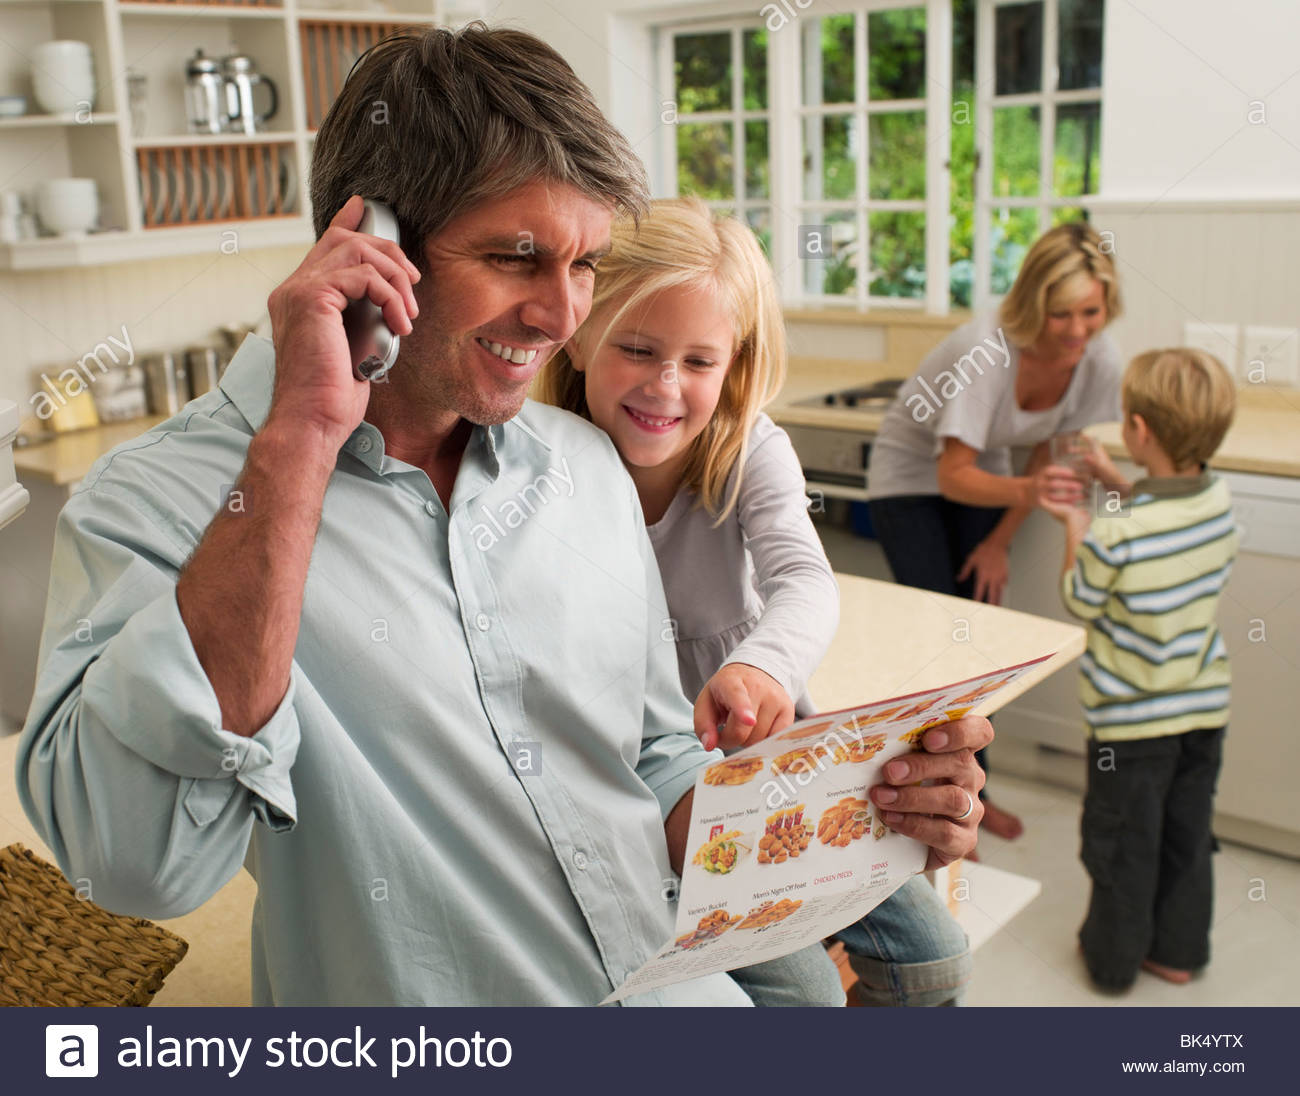 Family ordering take out food by telephone in domestic kitchen - Stock Image